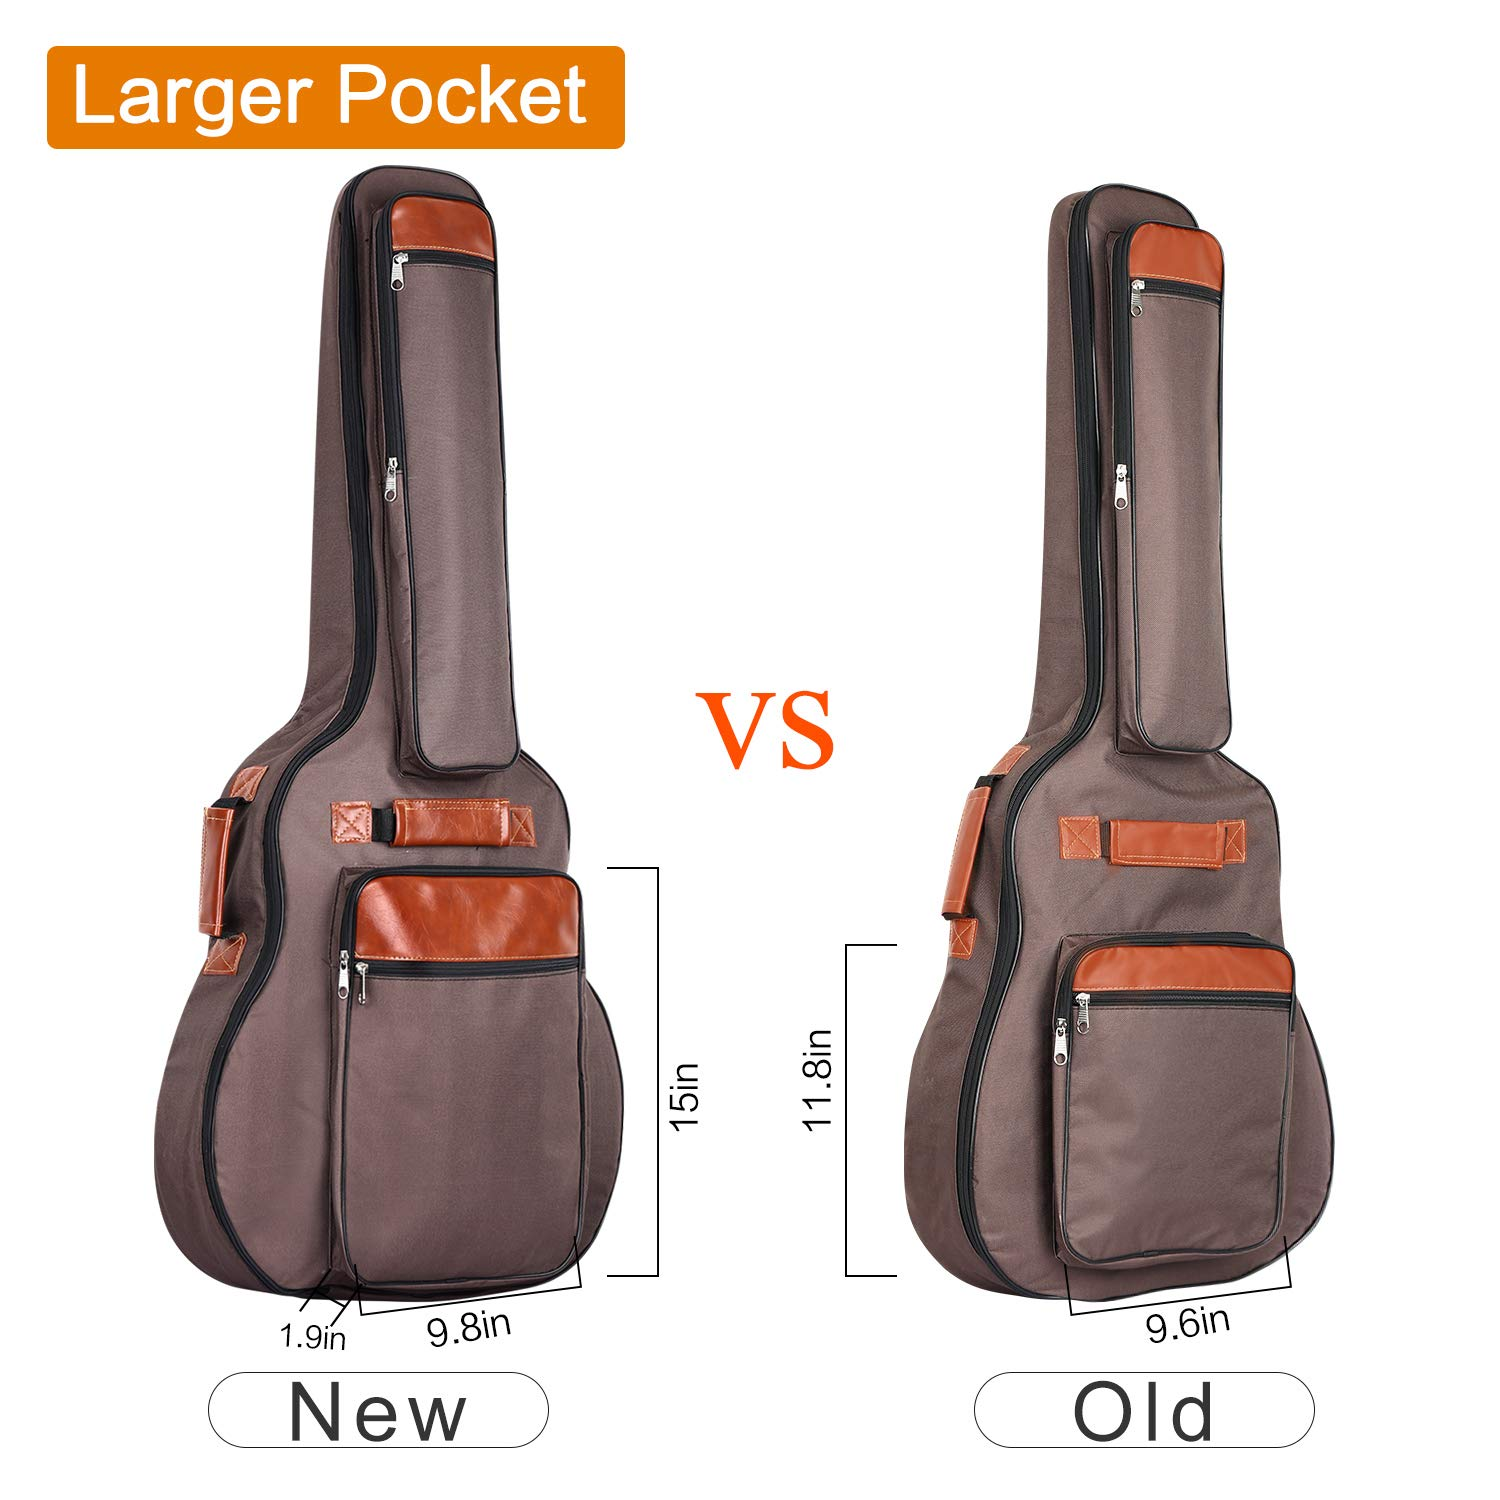 CAHAYA Guitar Bag 40 41 42 Inches 6 Pockets [Upgraded Premium Version] Guitar Case Waterproof Oxford Cloth 0.5 Inch Extra Thick Sponge Overly Padded with 5 Picks & Holder for Acoustic Classical Guitar by CAHAYA (Image #5)